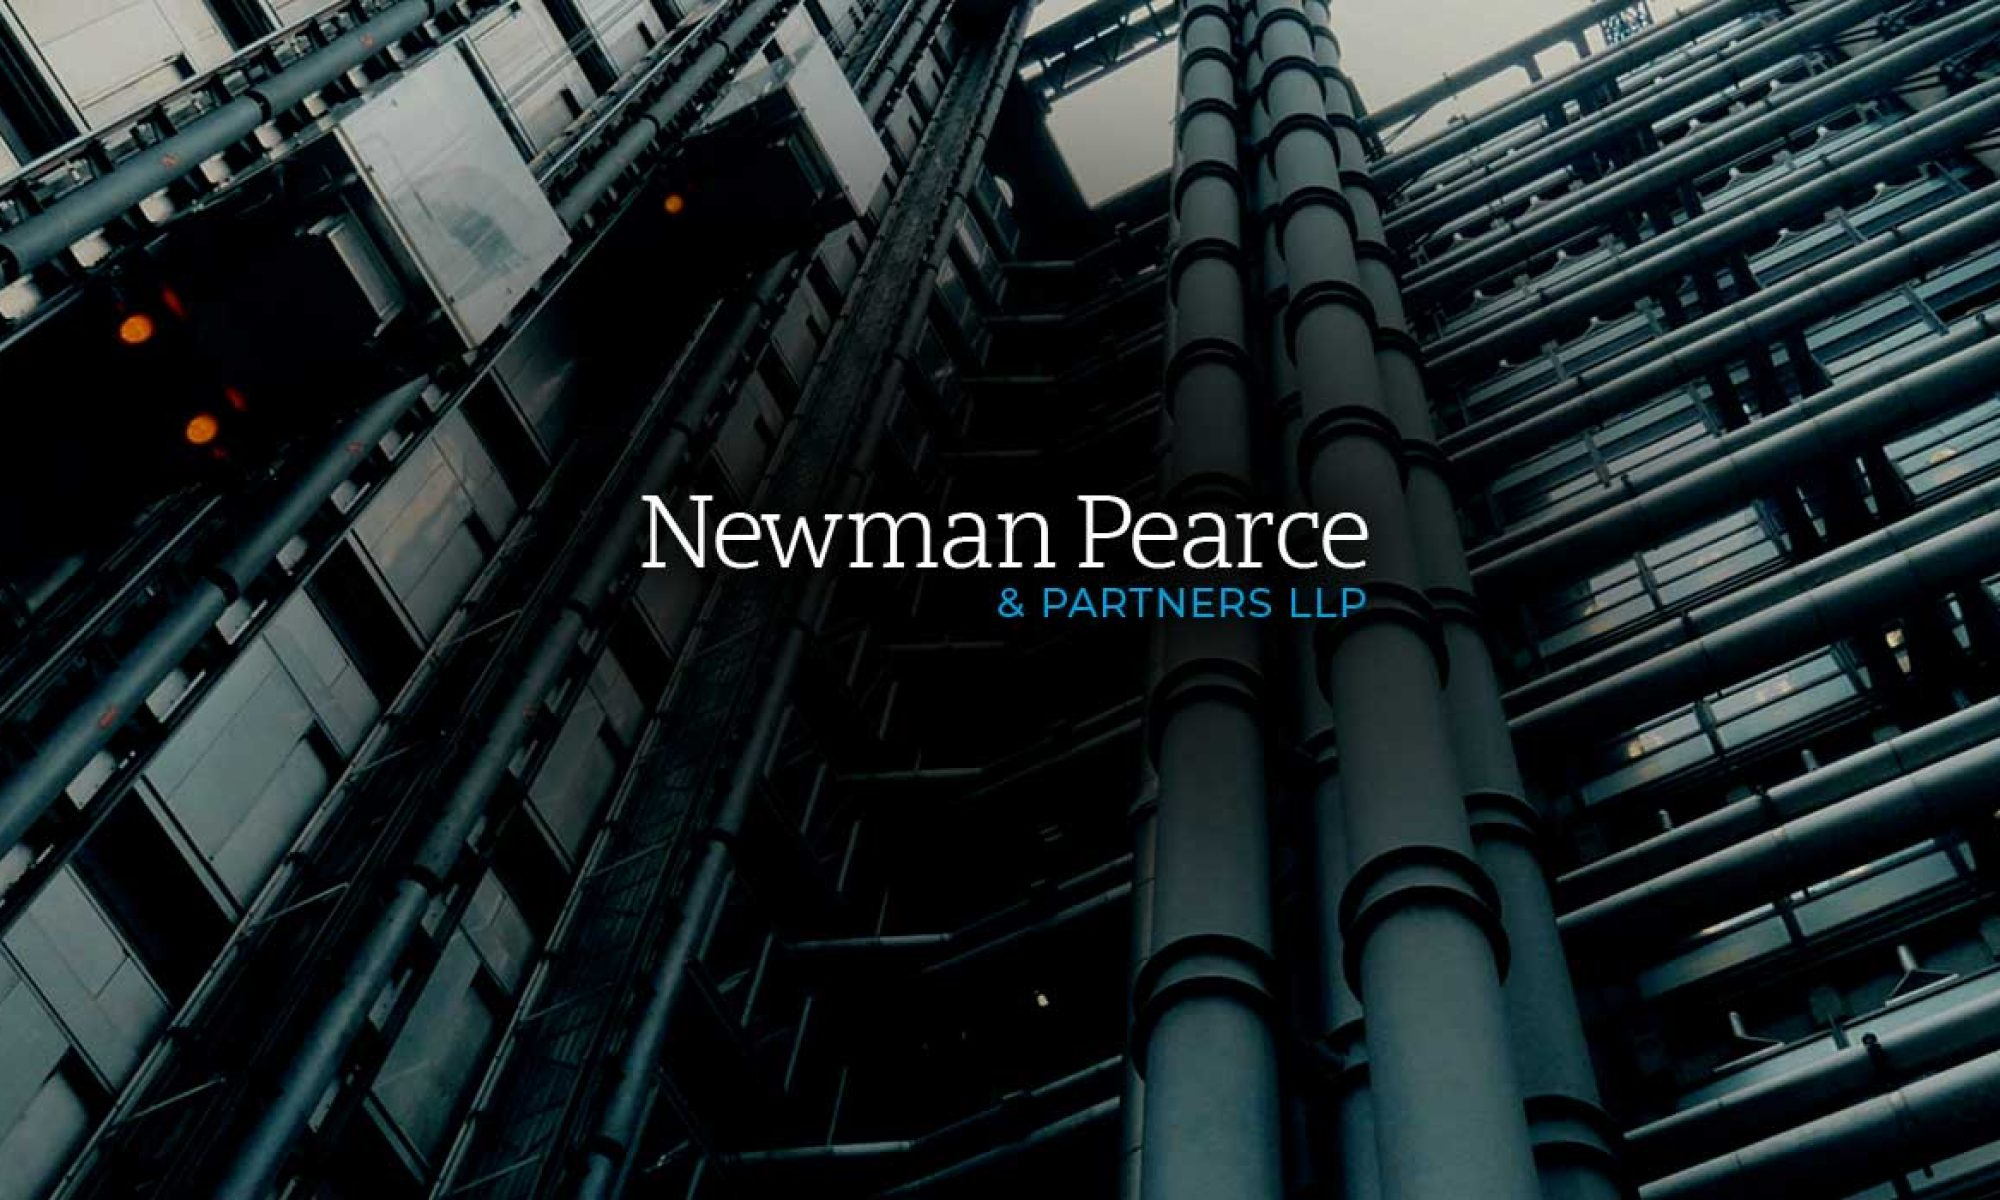 Newman Pearce & Partners LLP